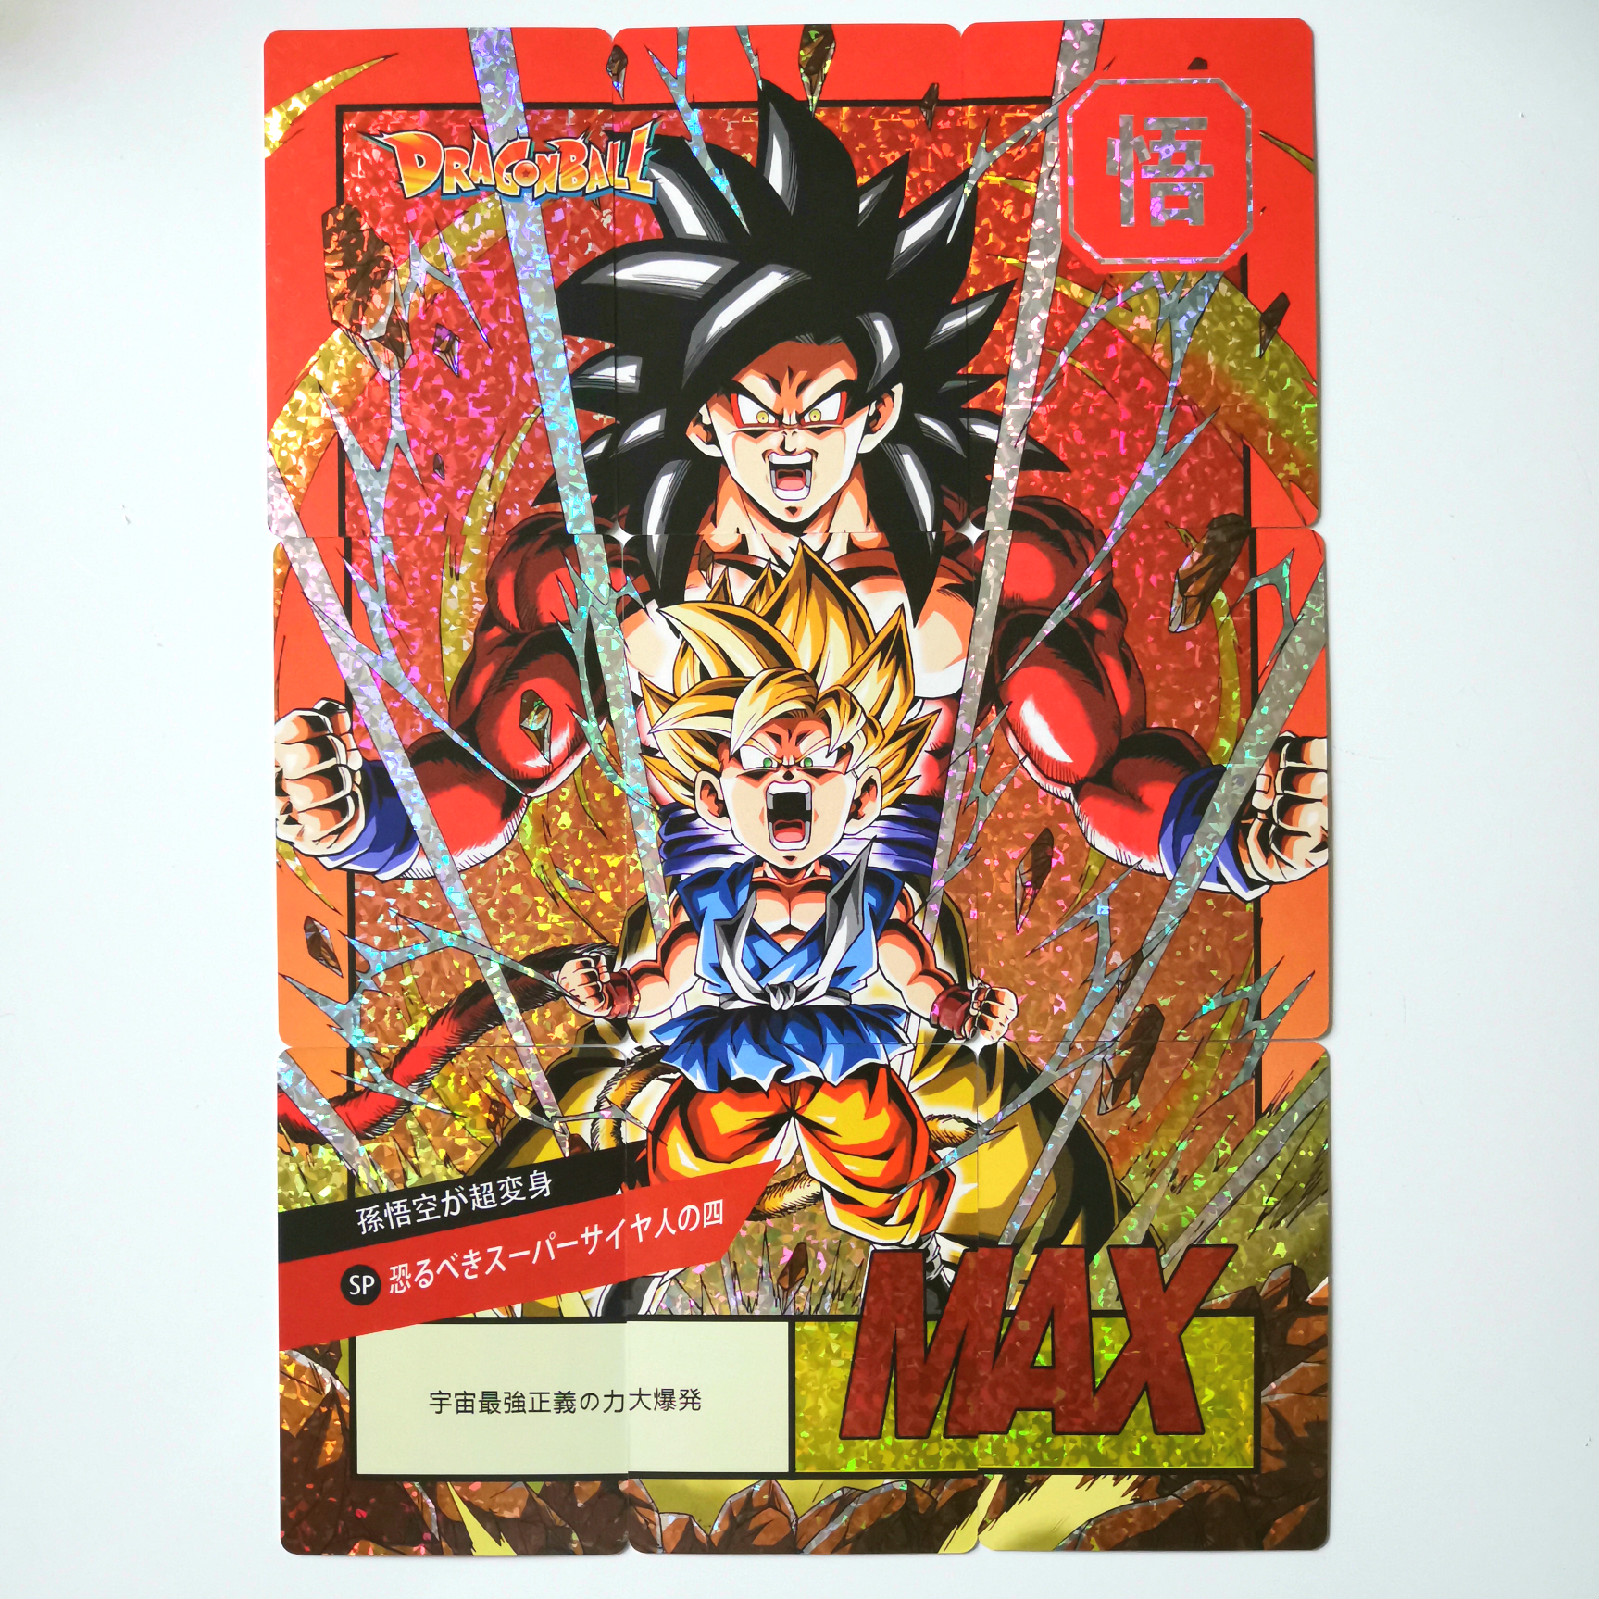 27pcs/set Super Dragon Ball Z Heroes Battle Card Ultra Instinct Goku Vegeta Game Collection Cards